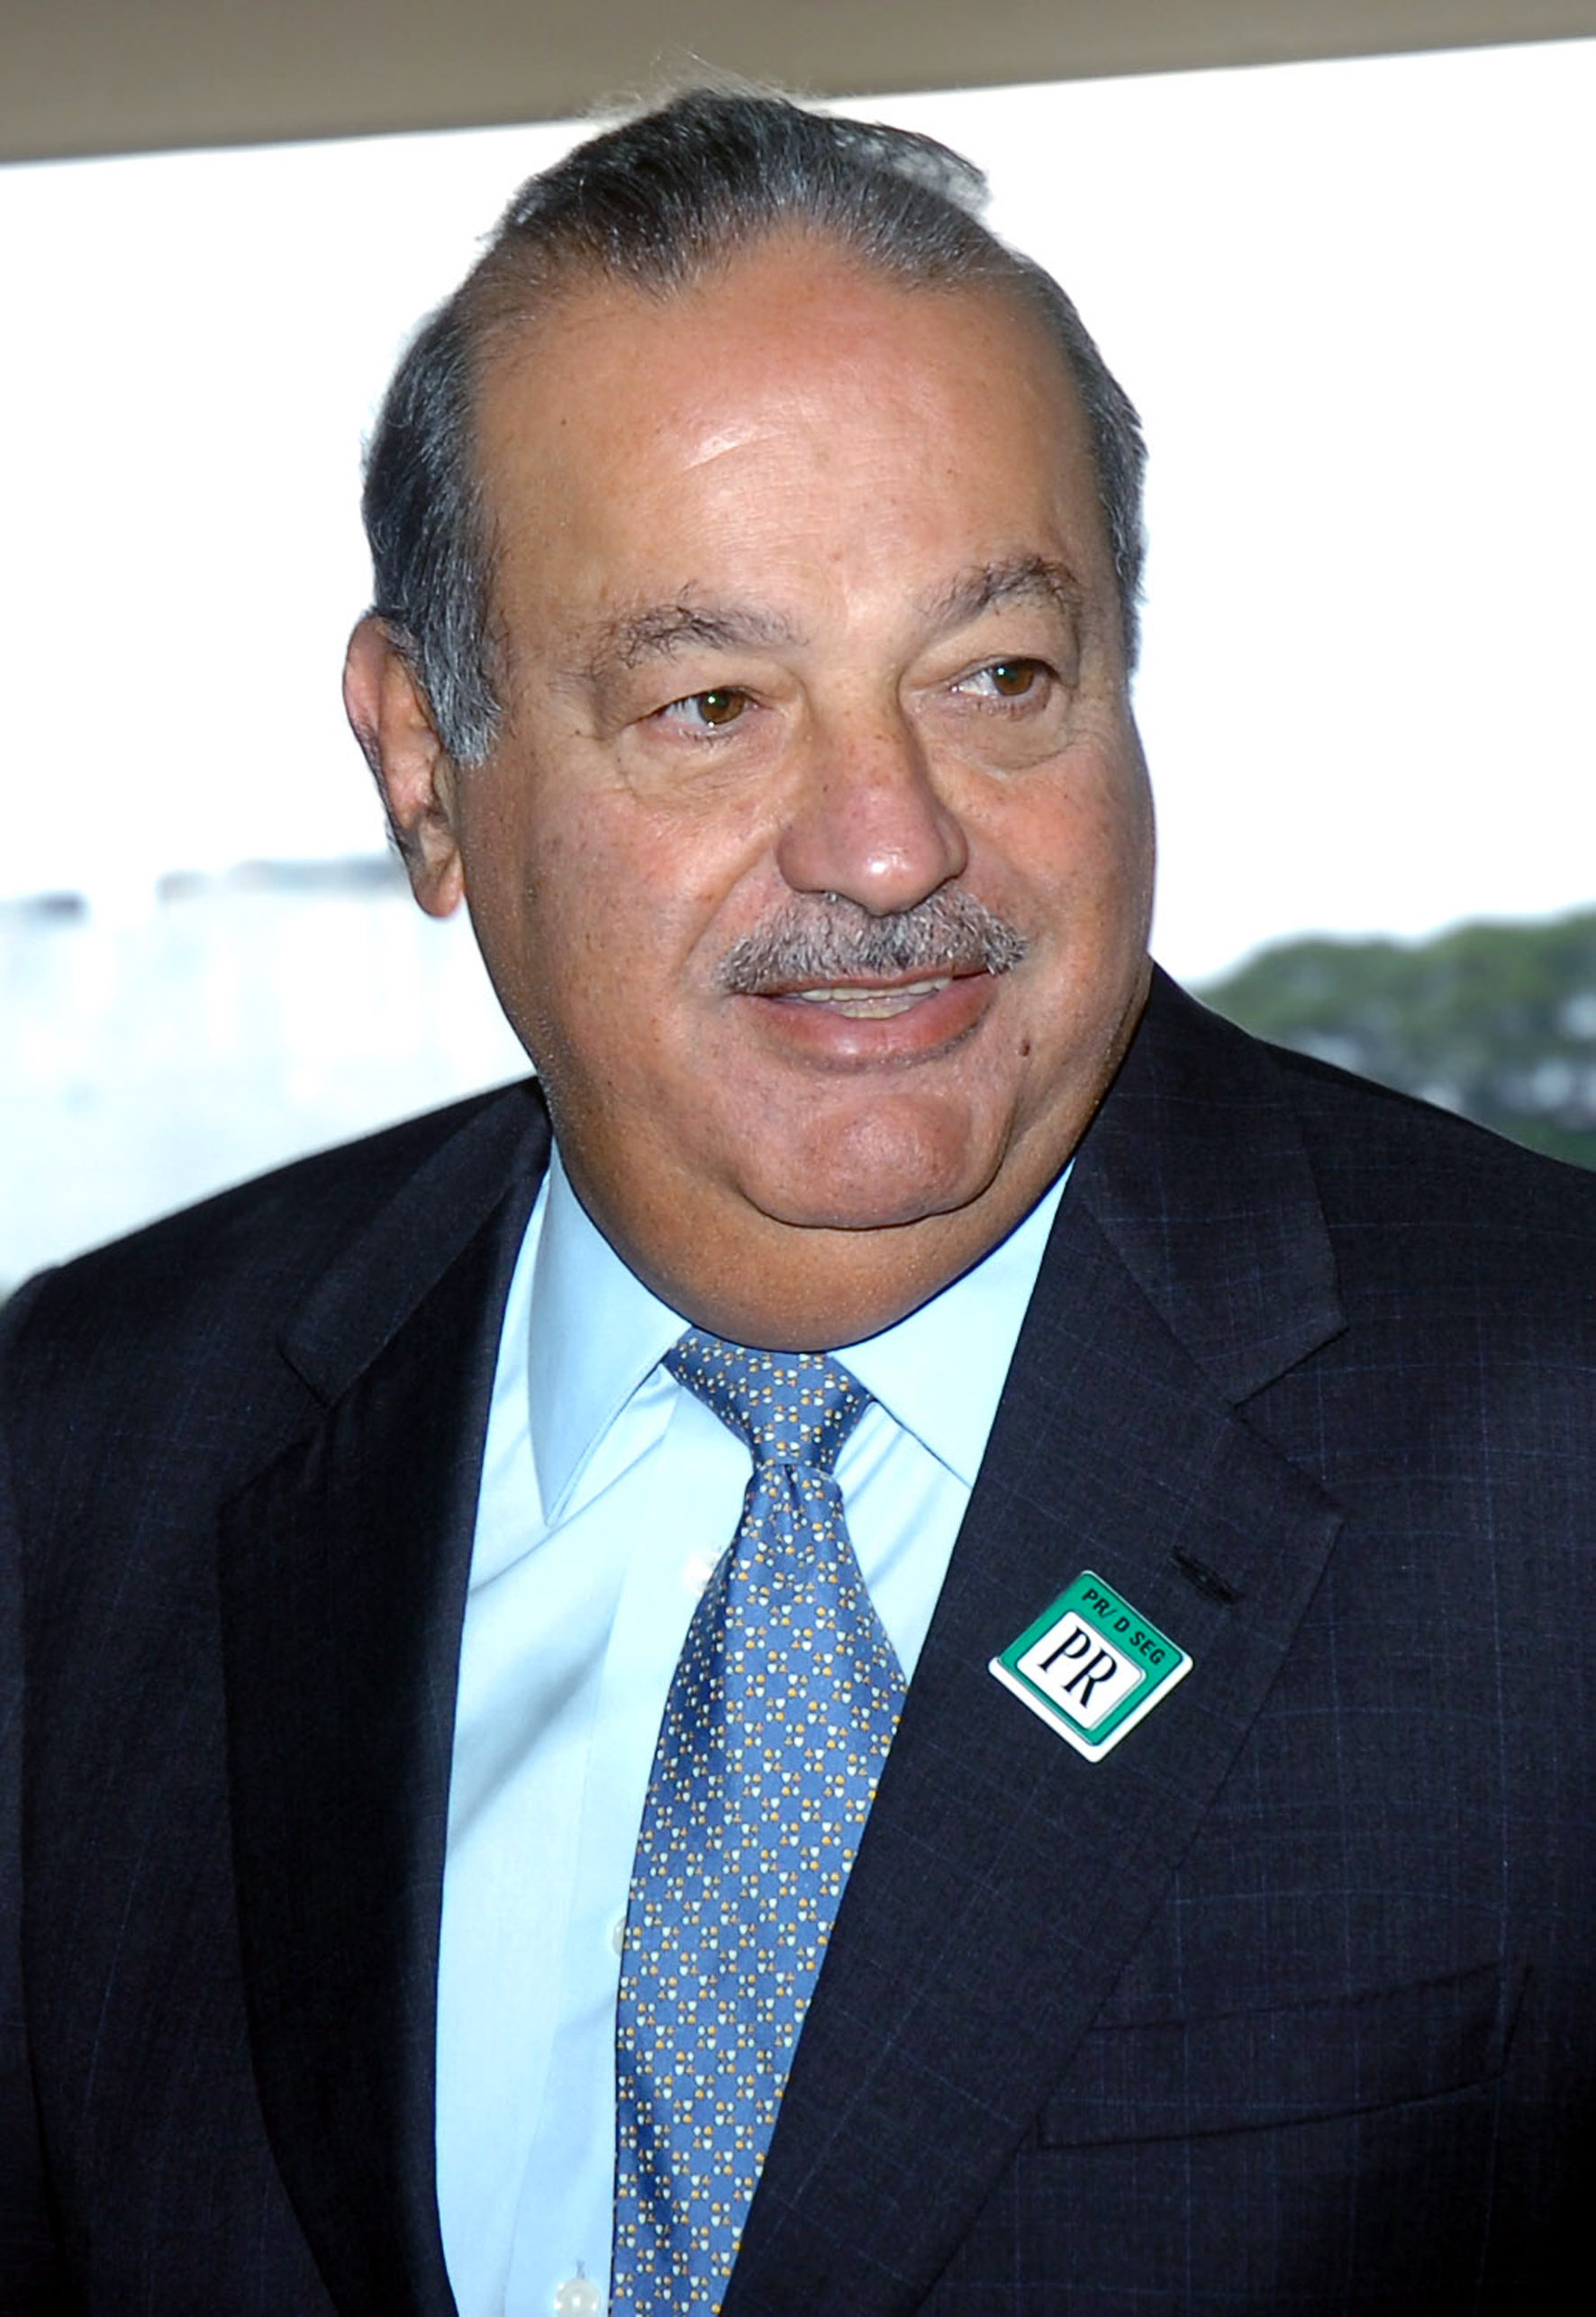 Carlos Slim Net Worth